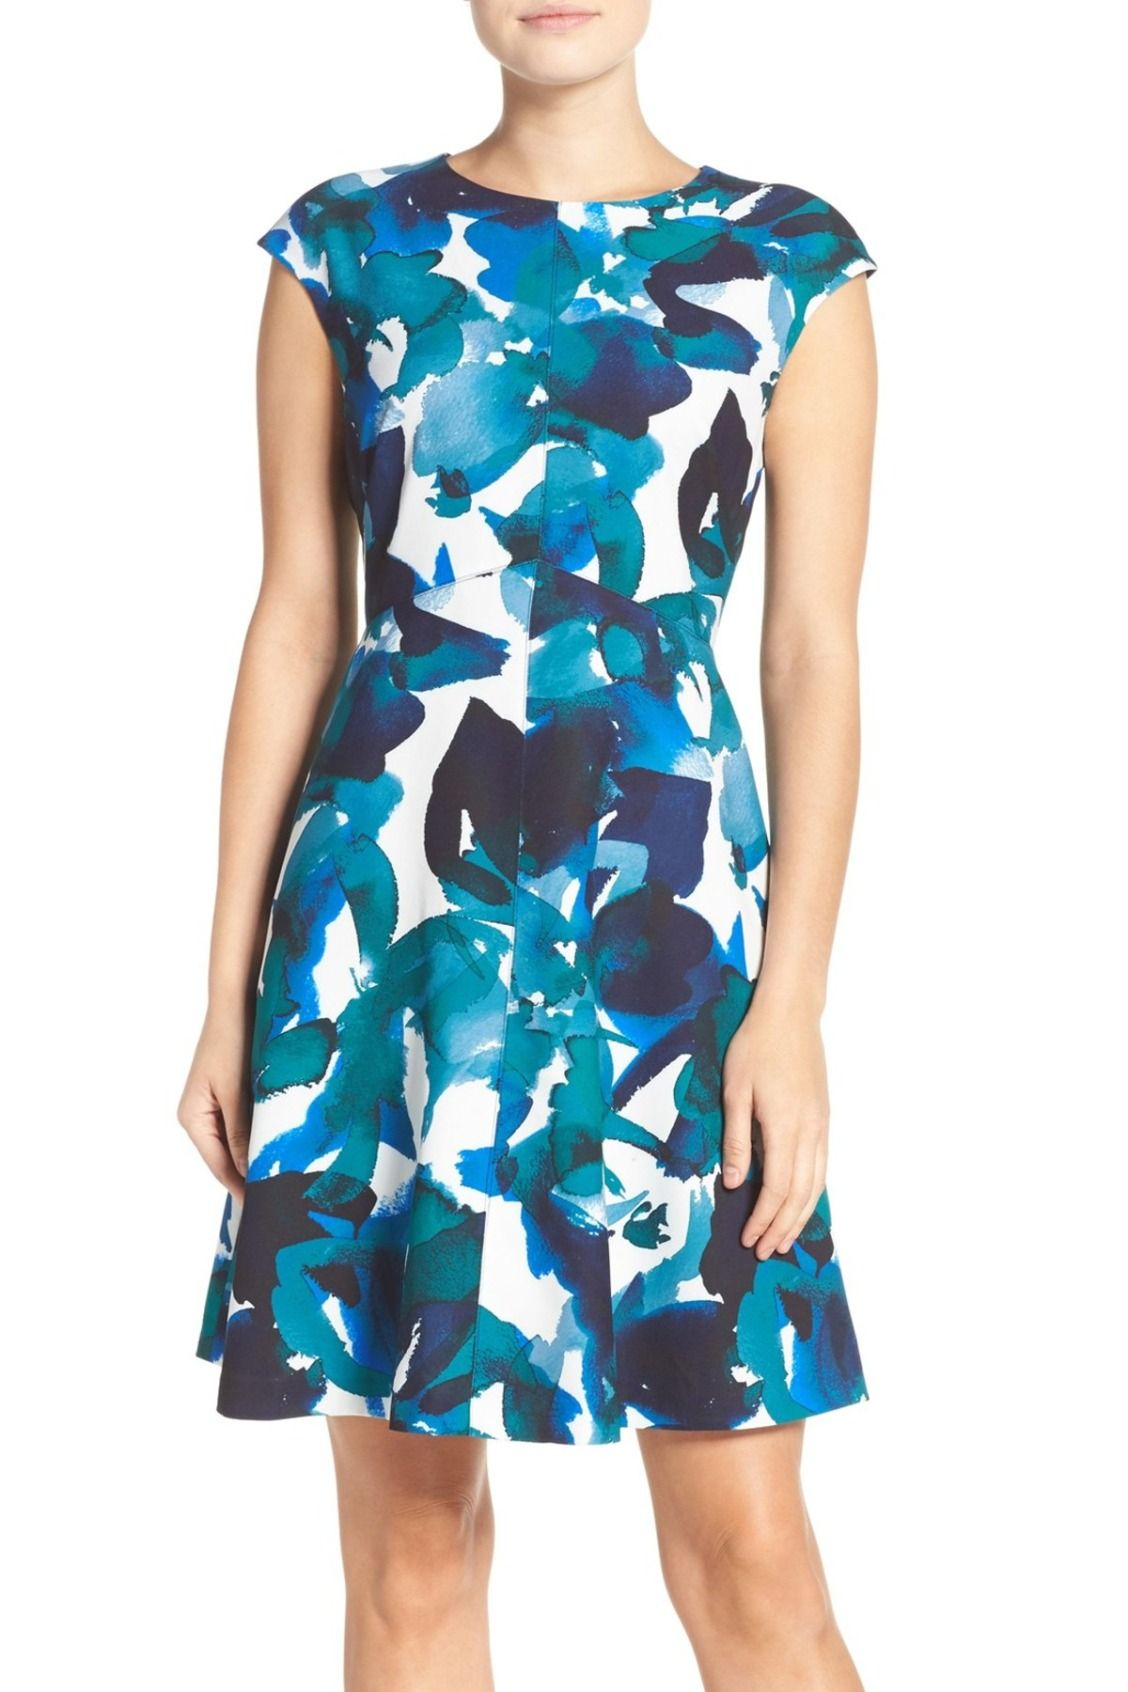 Beautiful In Blue Vince Camuto Floral Print Crepe Fit Flare Dress Fit Flare Dress Dresses Nordstrom Dresses [ 1692 x 1128 Pixel ]